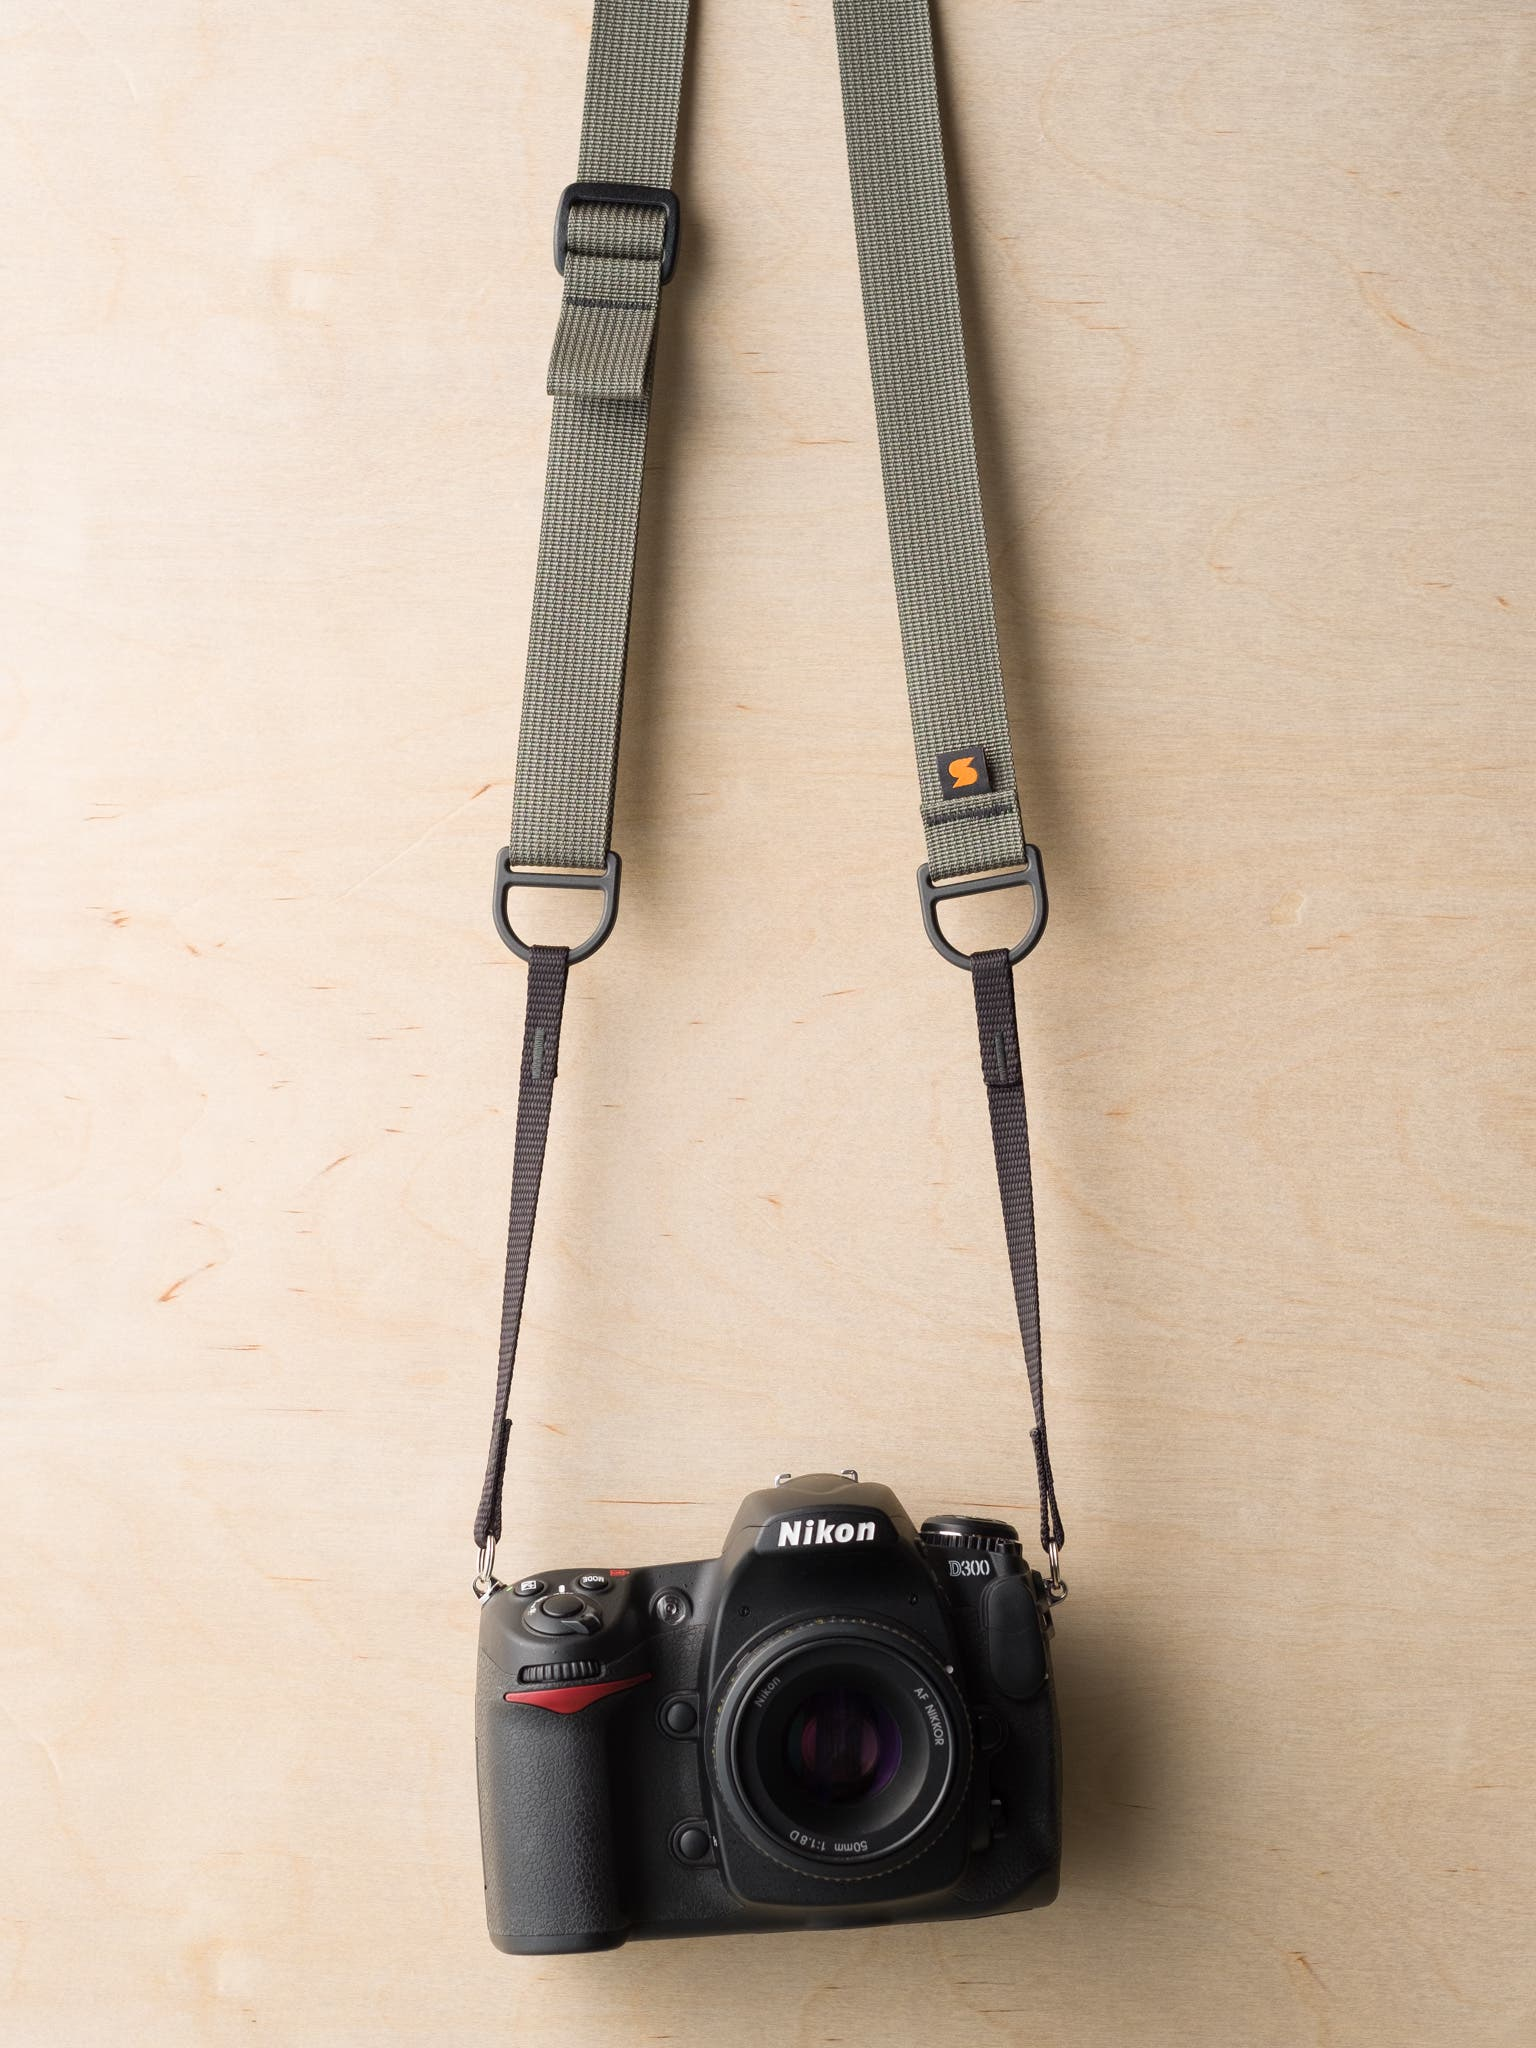 New Simplr F1 Sling-Style Camera Strap Is a Neck Strap, Sling Strap, and Wrist Strap in One